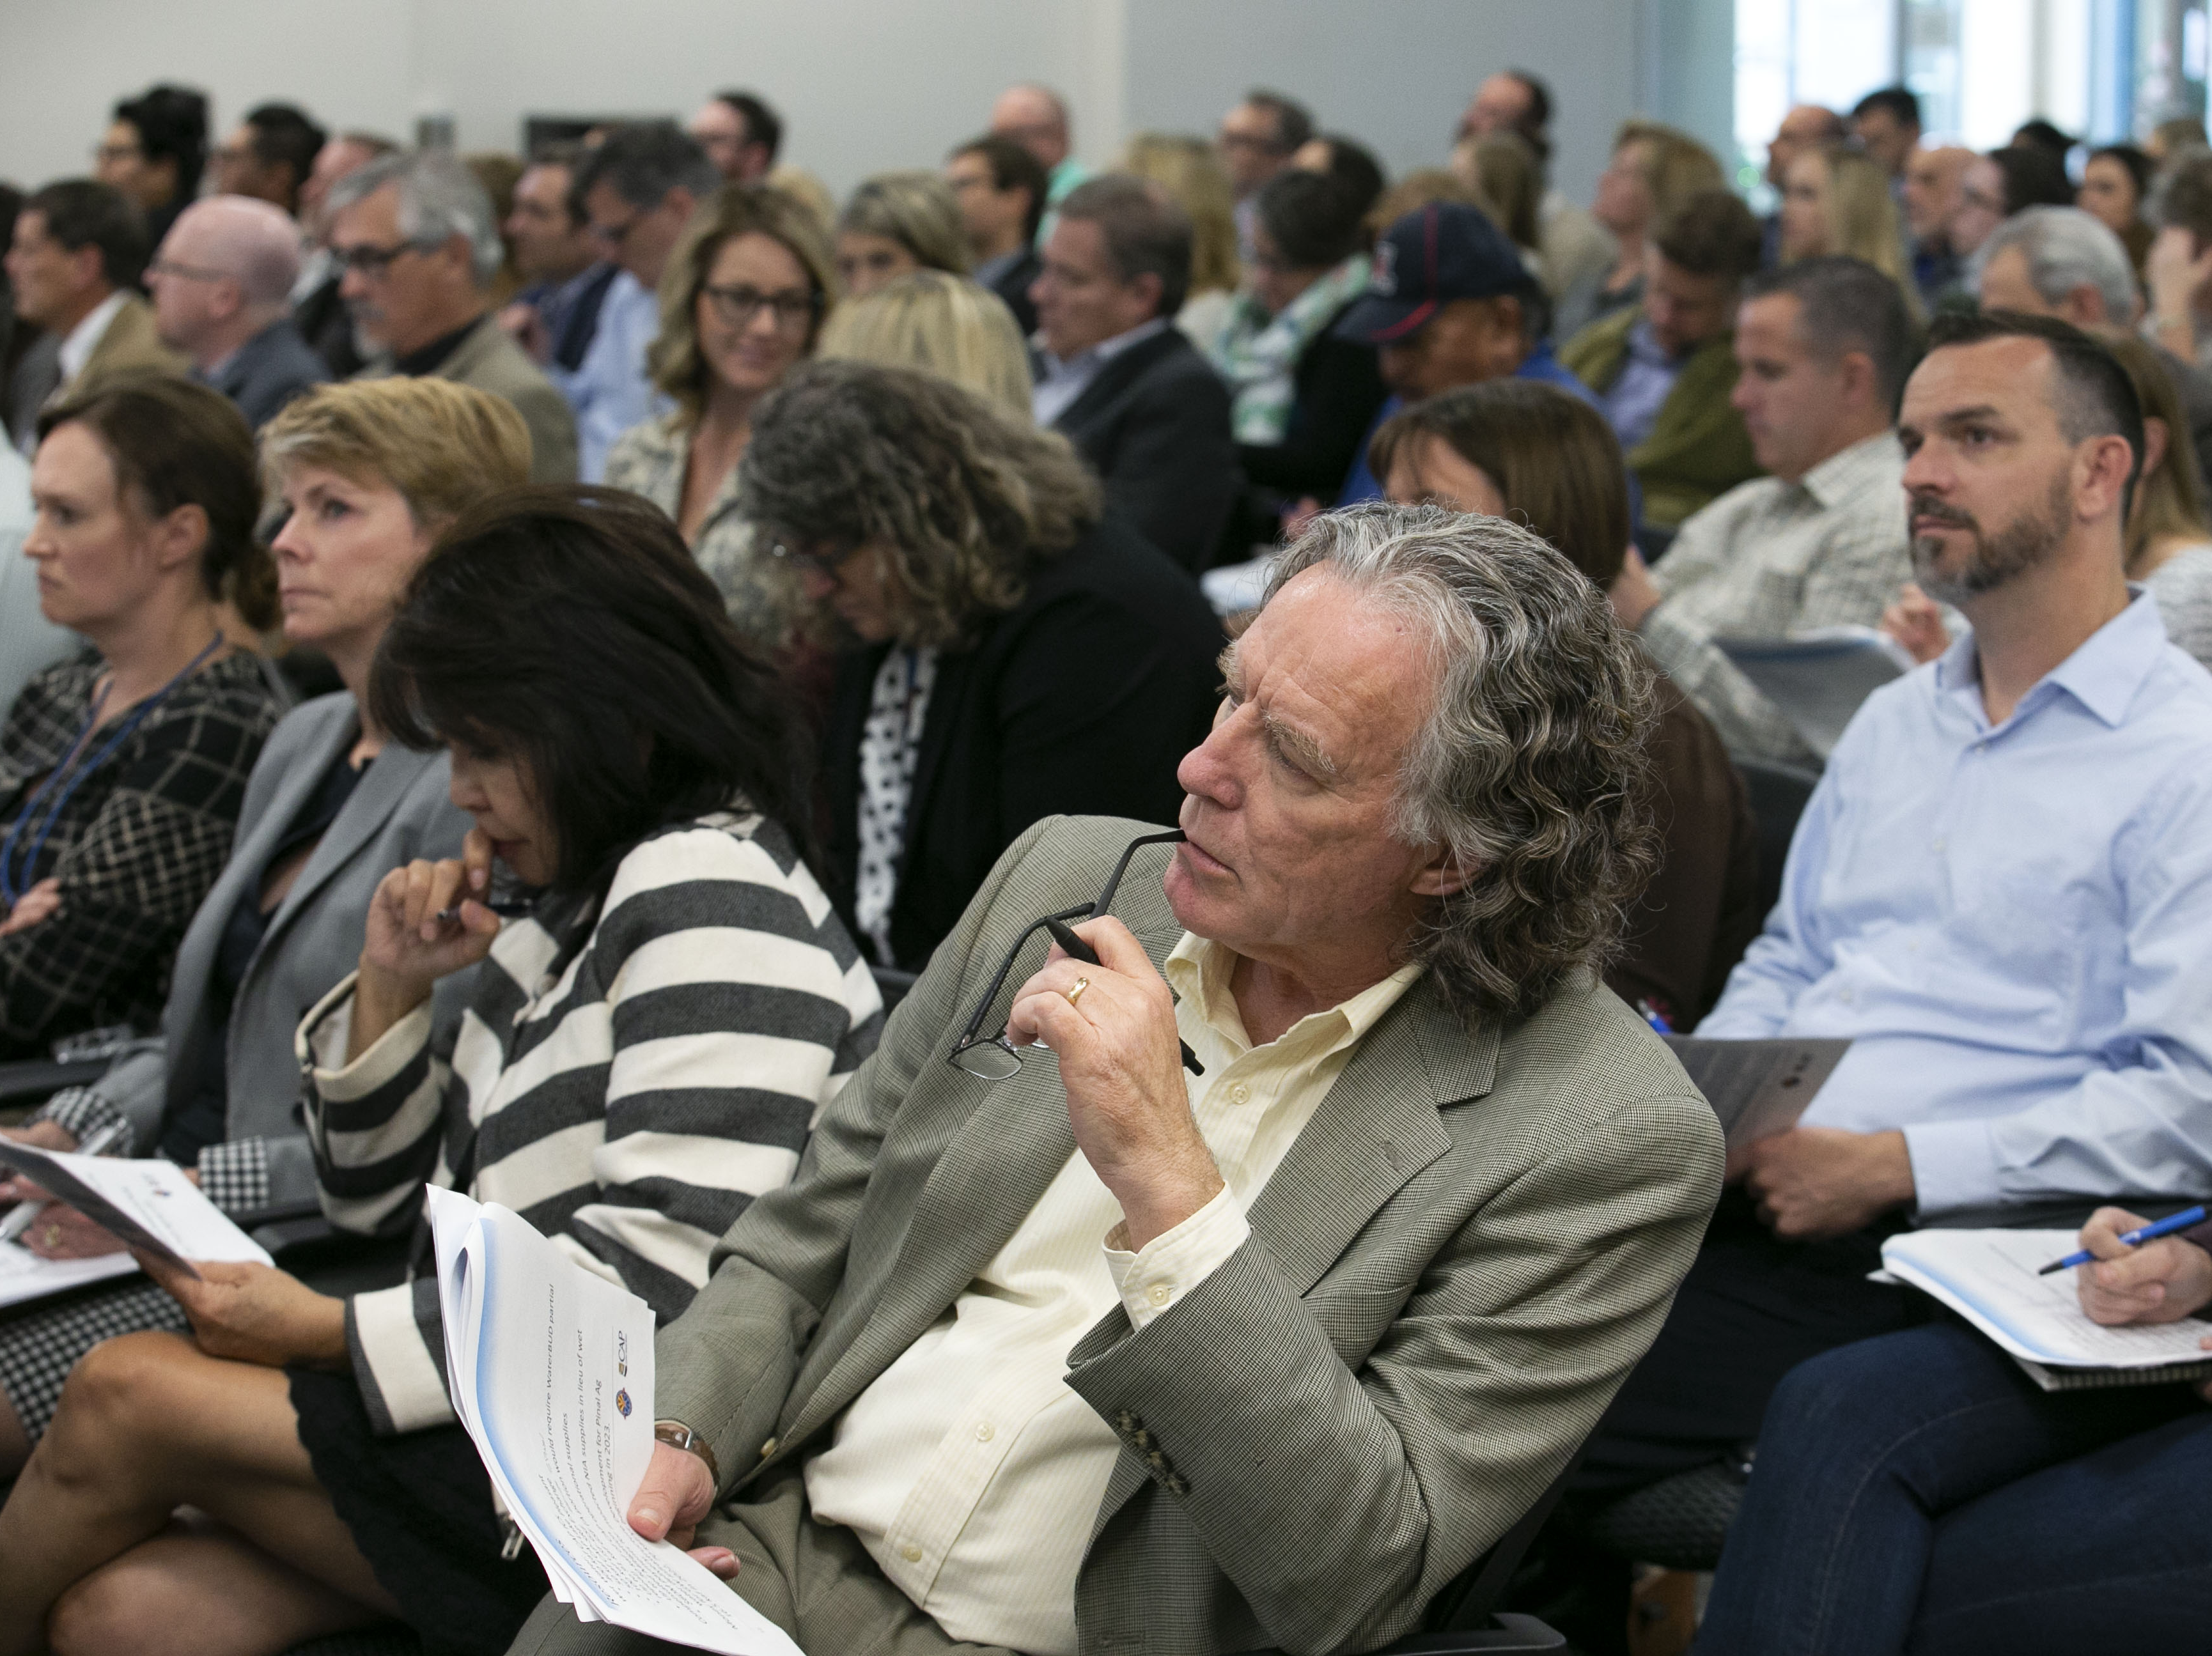 Kip Volpe, co-chair of the Tucson Regional Water Coalition of the Southern Arizona Leadership Committee, listens from the audience during the Arizona Lower Basin Drought Contingency Plan Steering Committee meeting to work on a drought contingency plan for the Colorado River at Central Arizona Project headquarters in Phoenix on November 29, 2018.